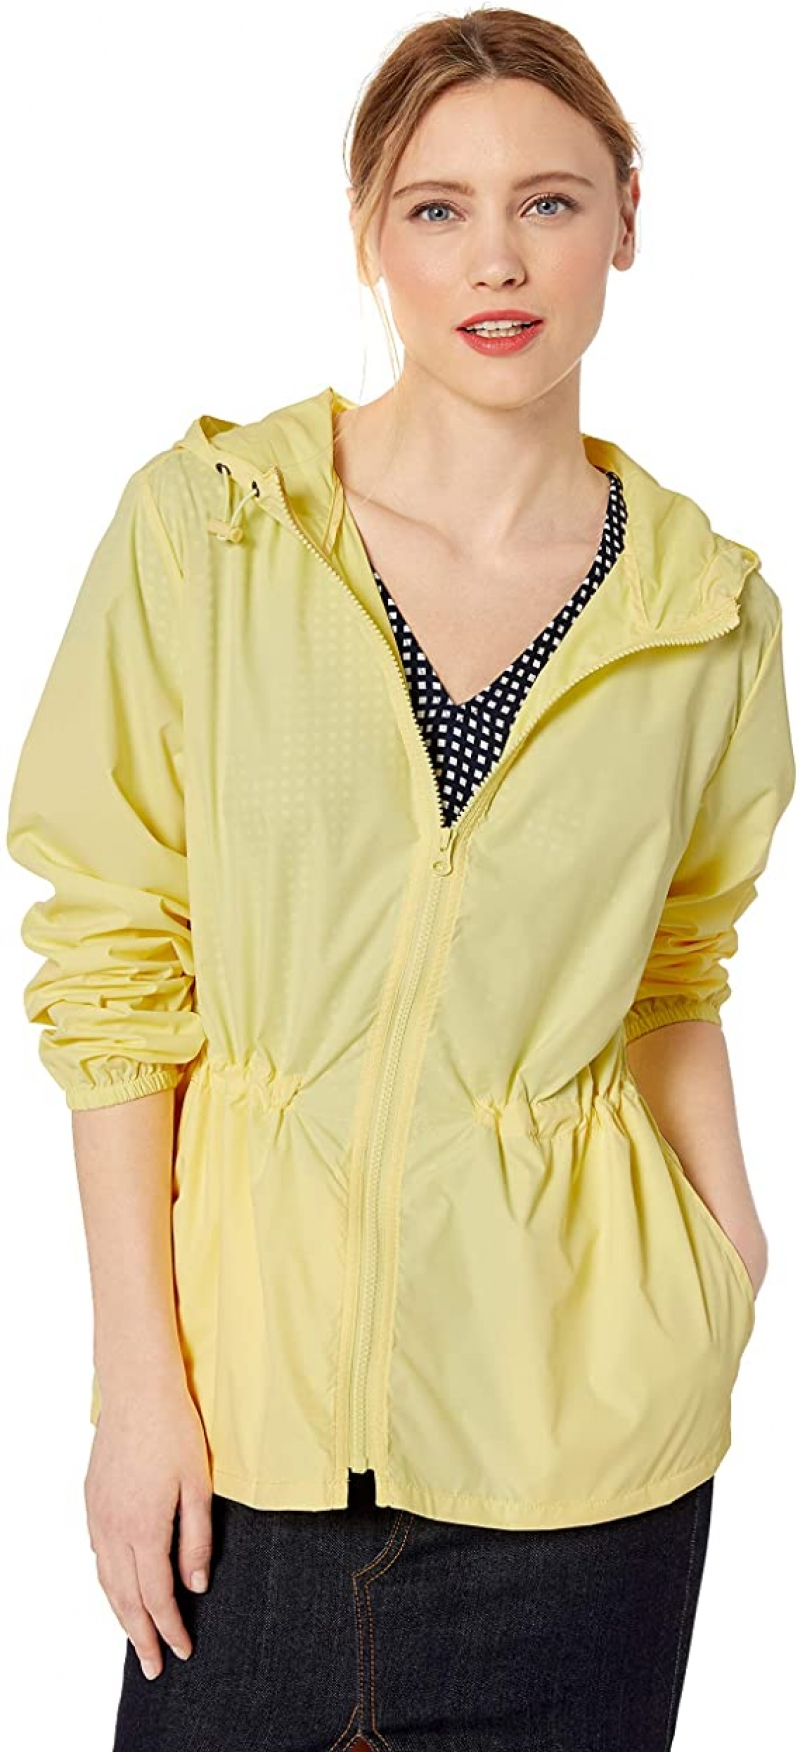 ihocon: J.Crew Mercantile Women's Packable Rain Jacket 女士防雨外套 (size: M)